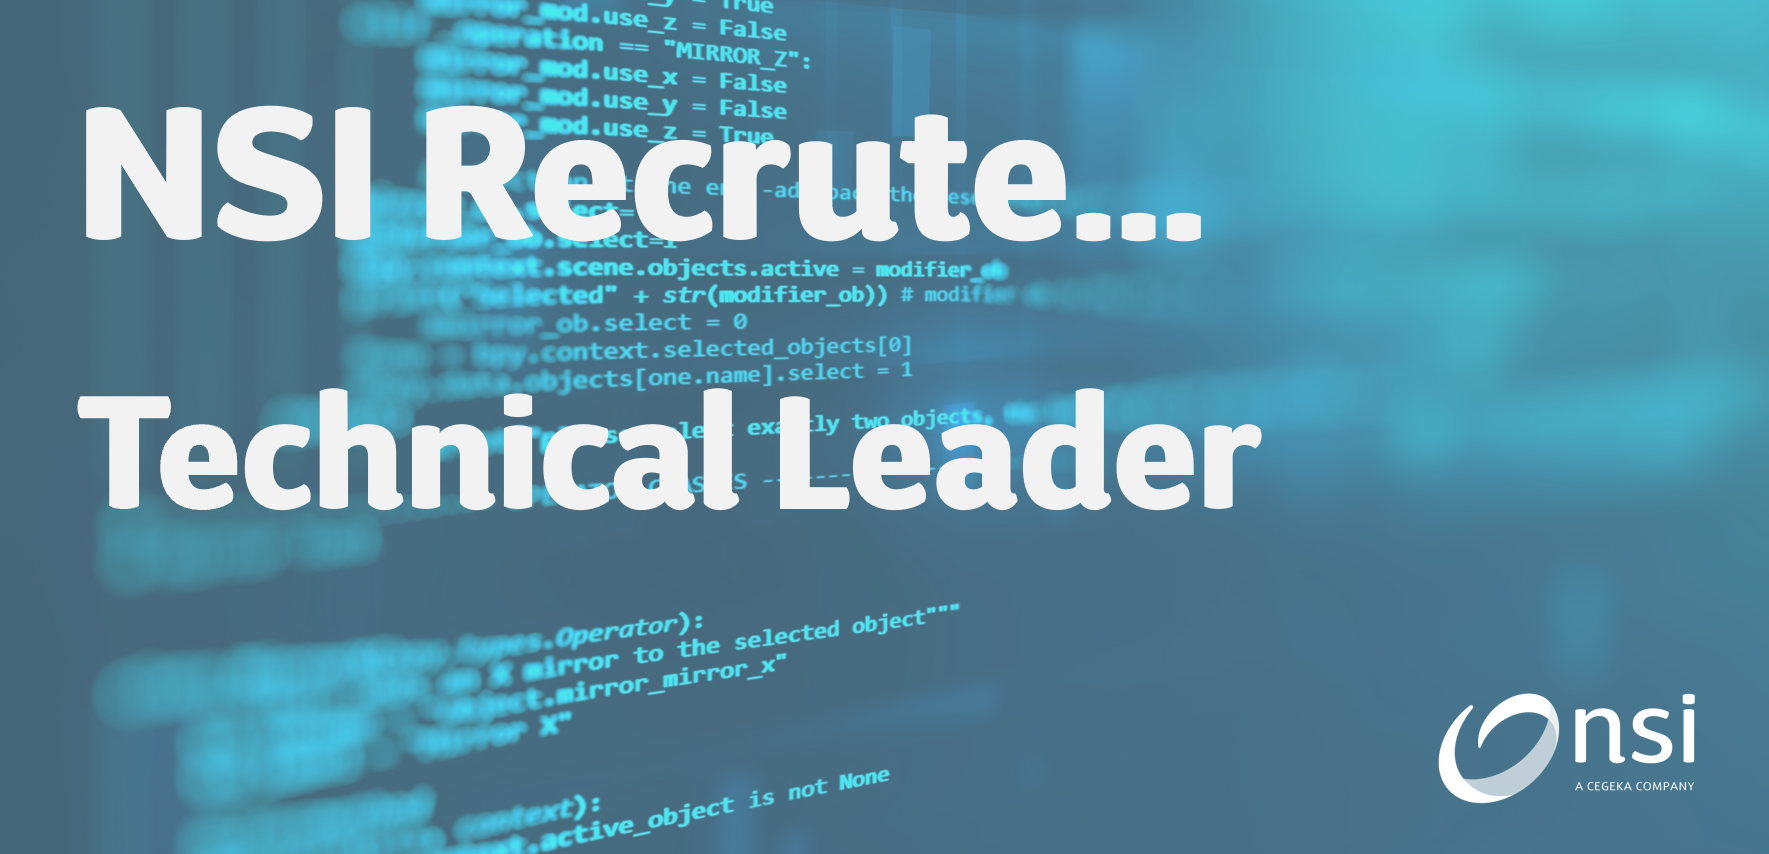 NSI recrute : Technical Leader FR/EN